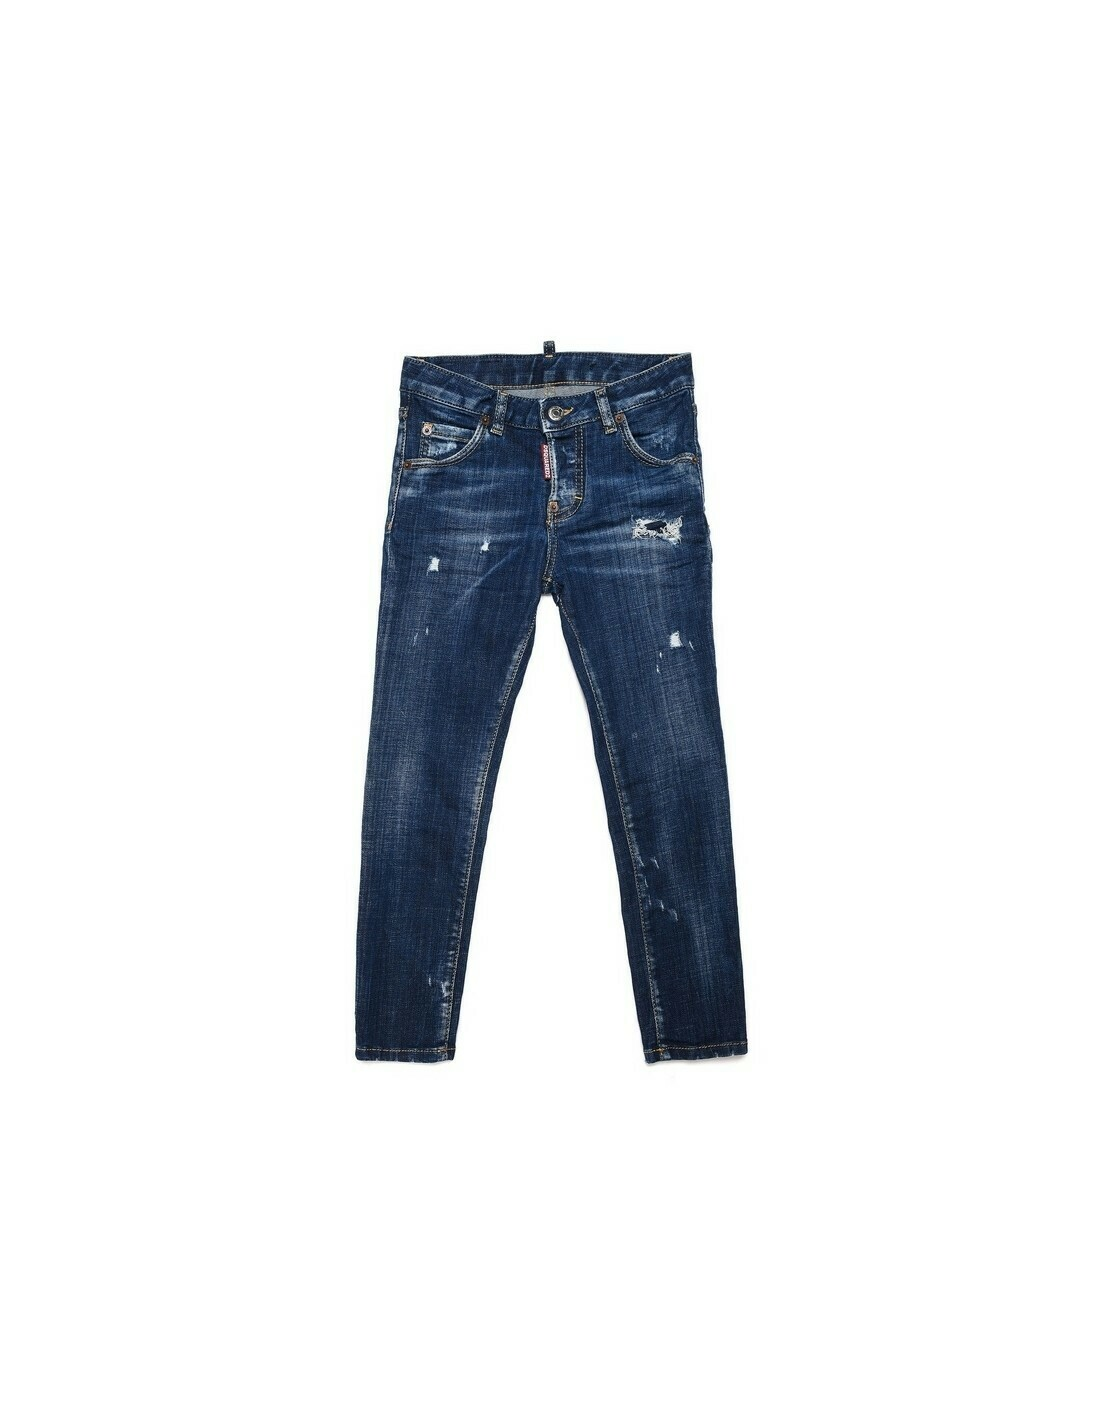 Dsquared2 Kids | Cool Girl Jean | DQ01PX D001J D2P43VF blauw